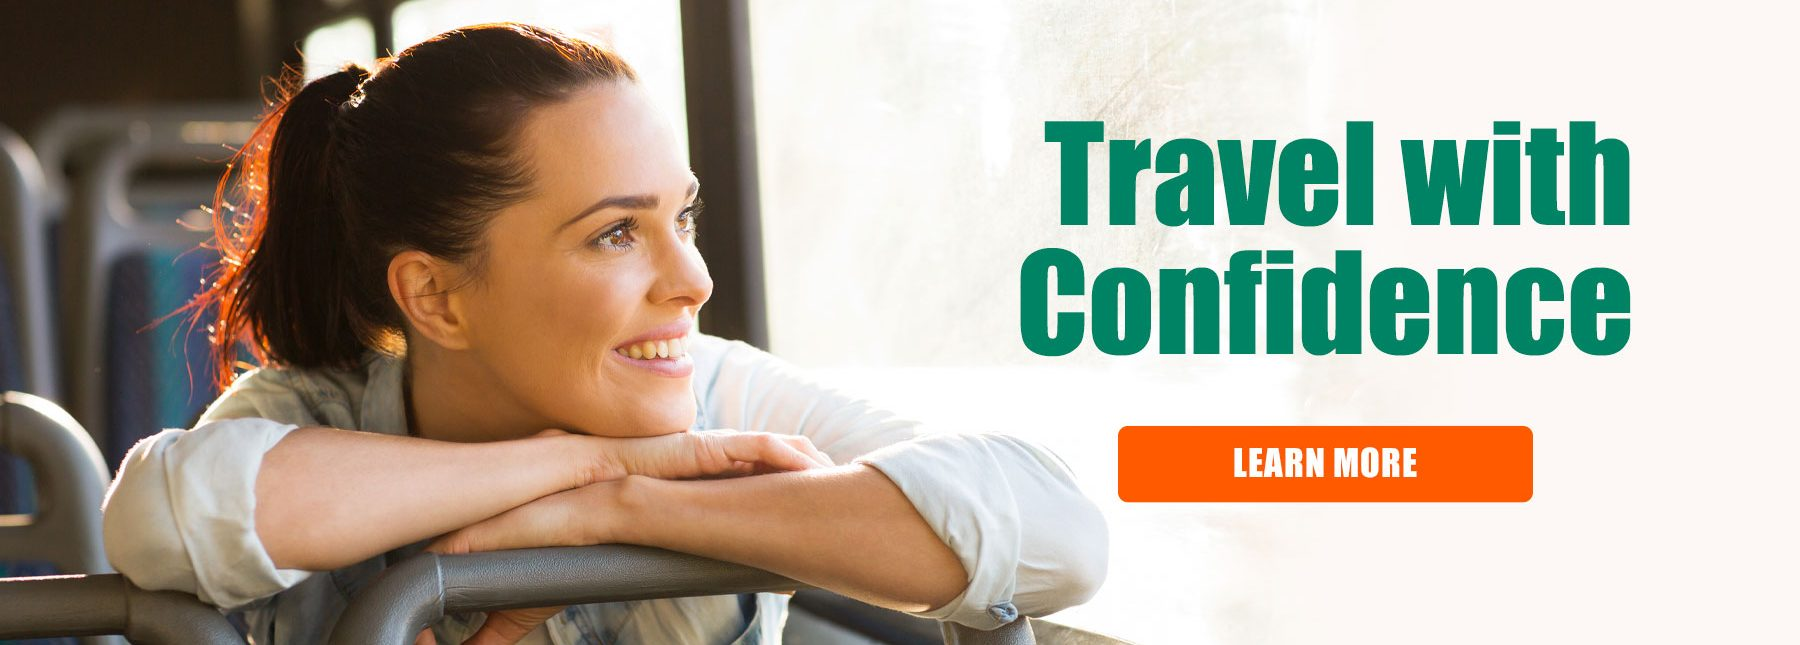 Travel With Confidence Gold 1800x745